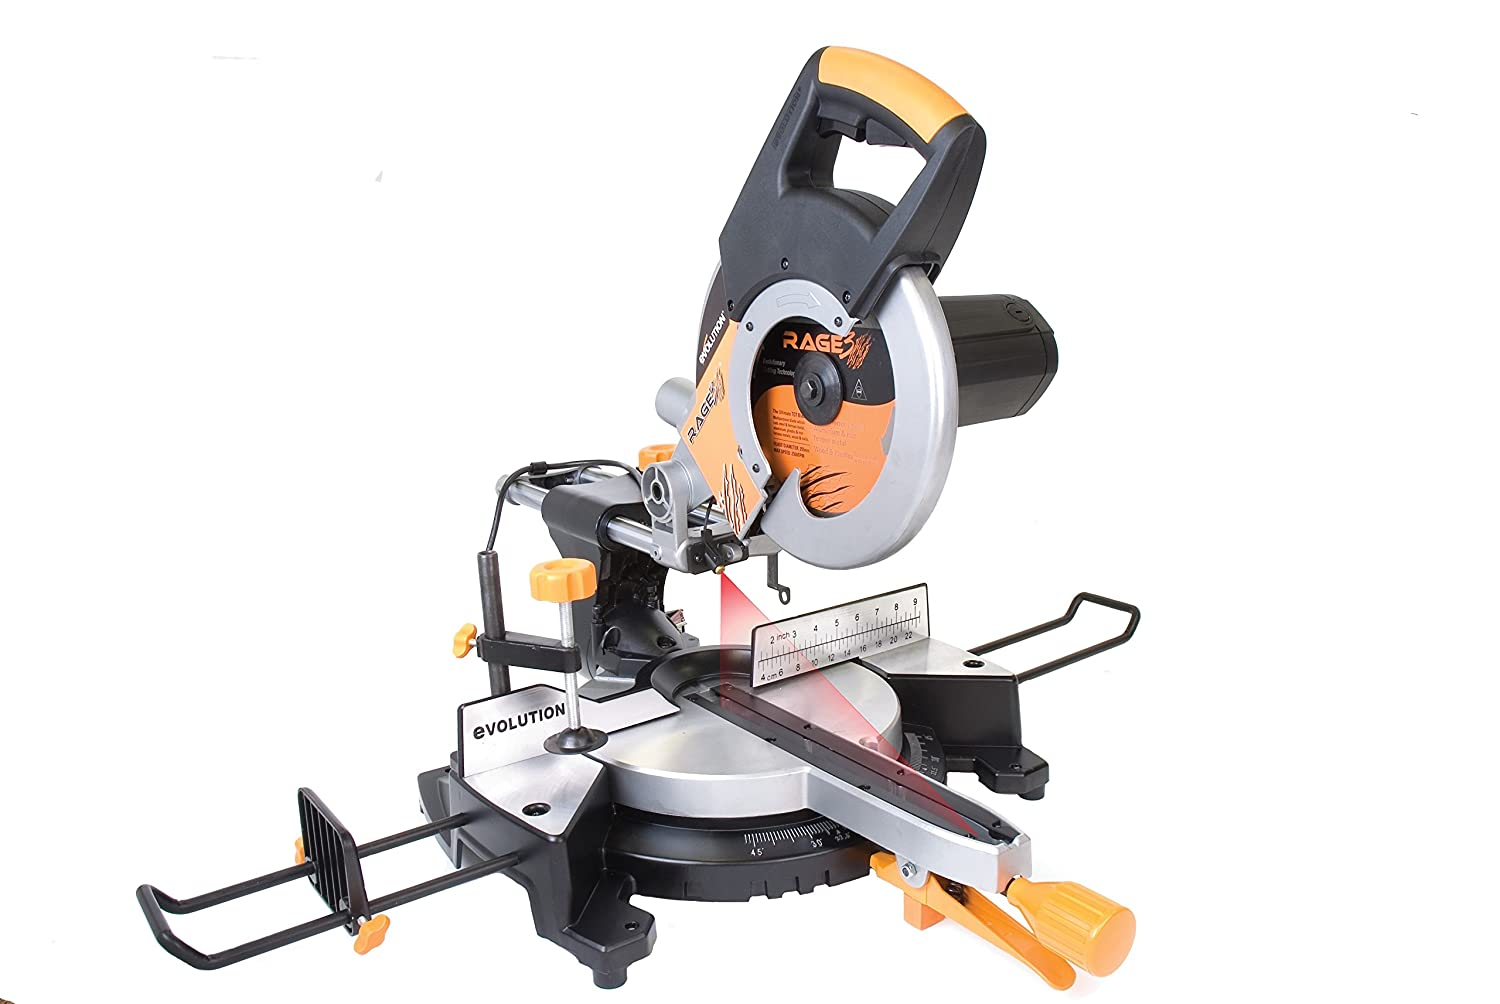 Evolution Miter Saw RAGE3